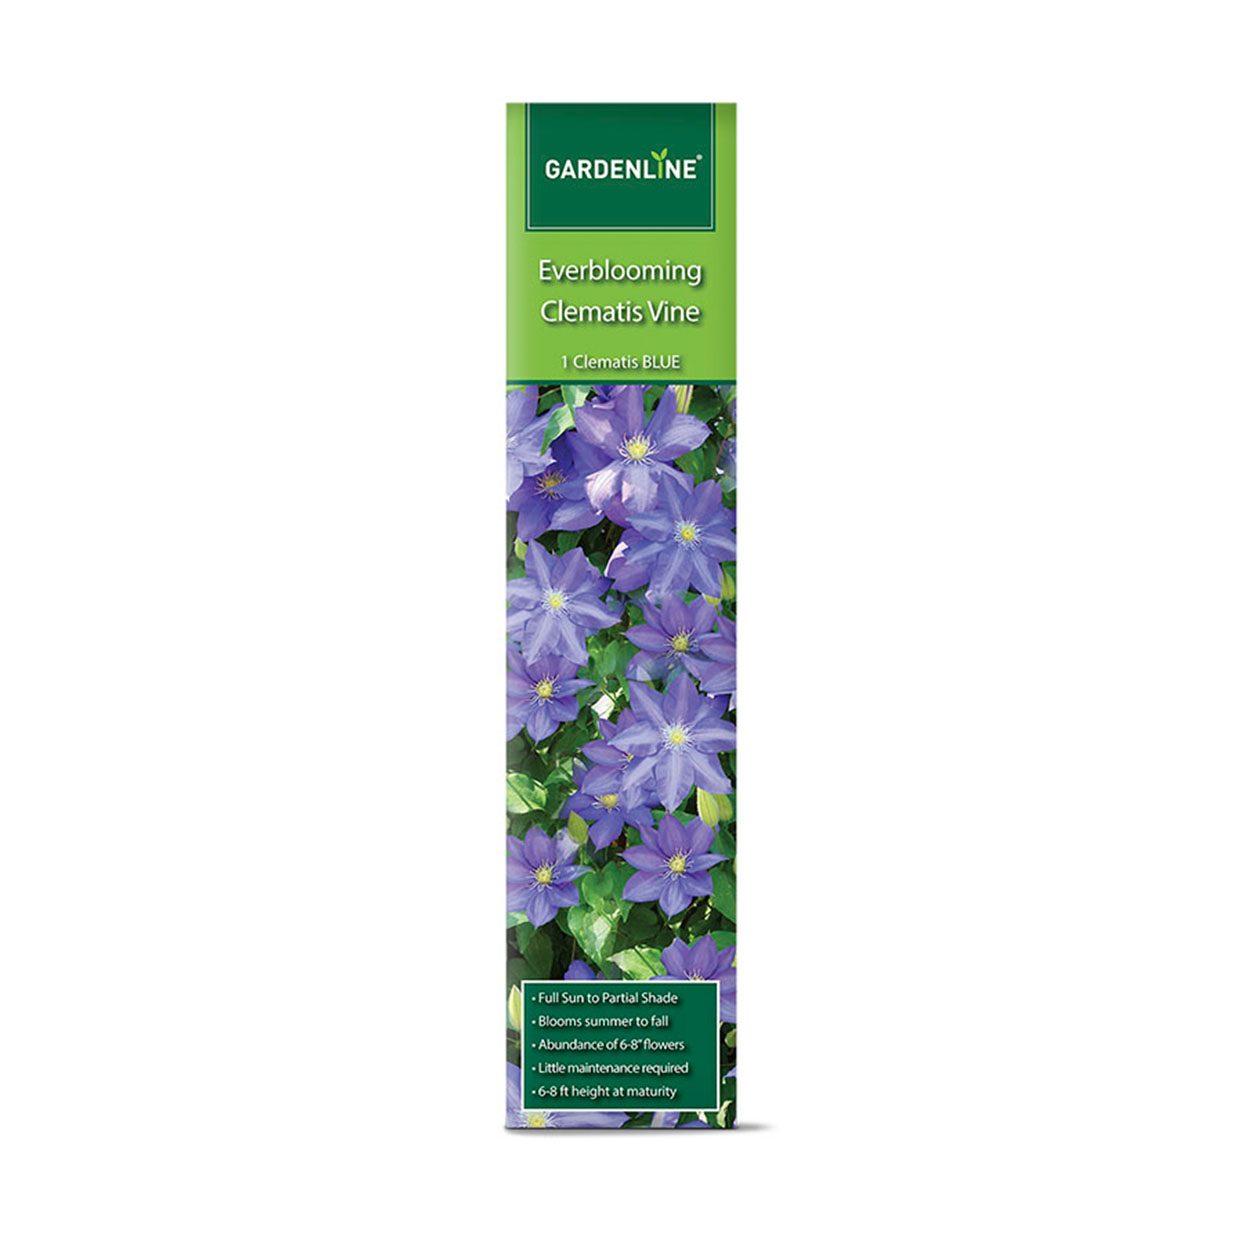 Green packet of Everlasting Blue Clematis vine with image of large blue flowers on package